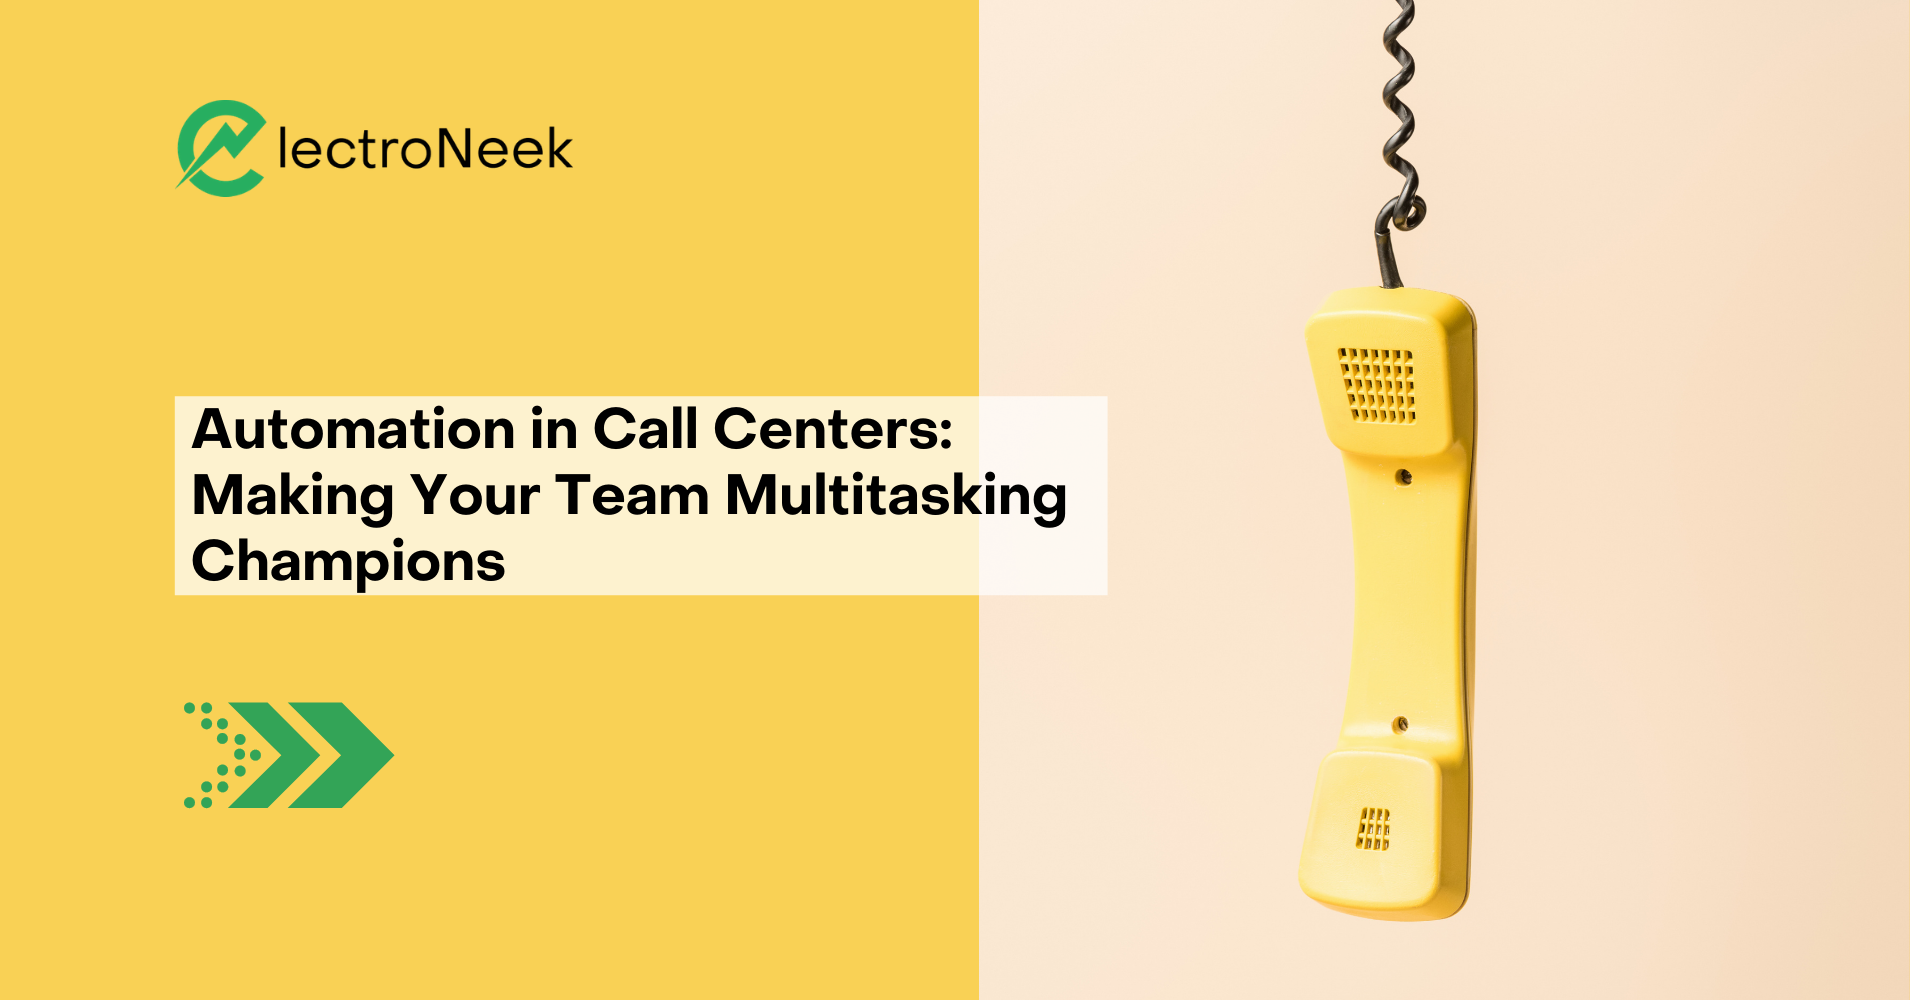 Automation in Call Centers: Making Your Team Multitasking Champions